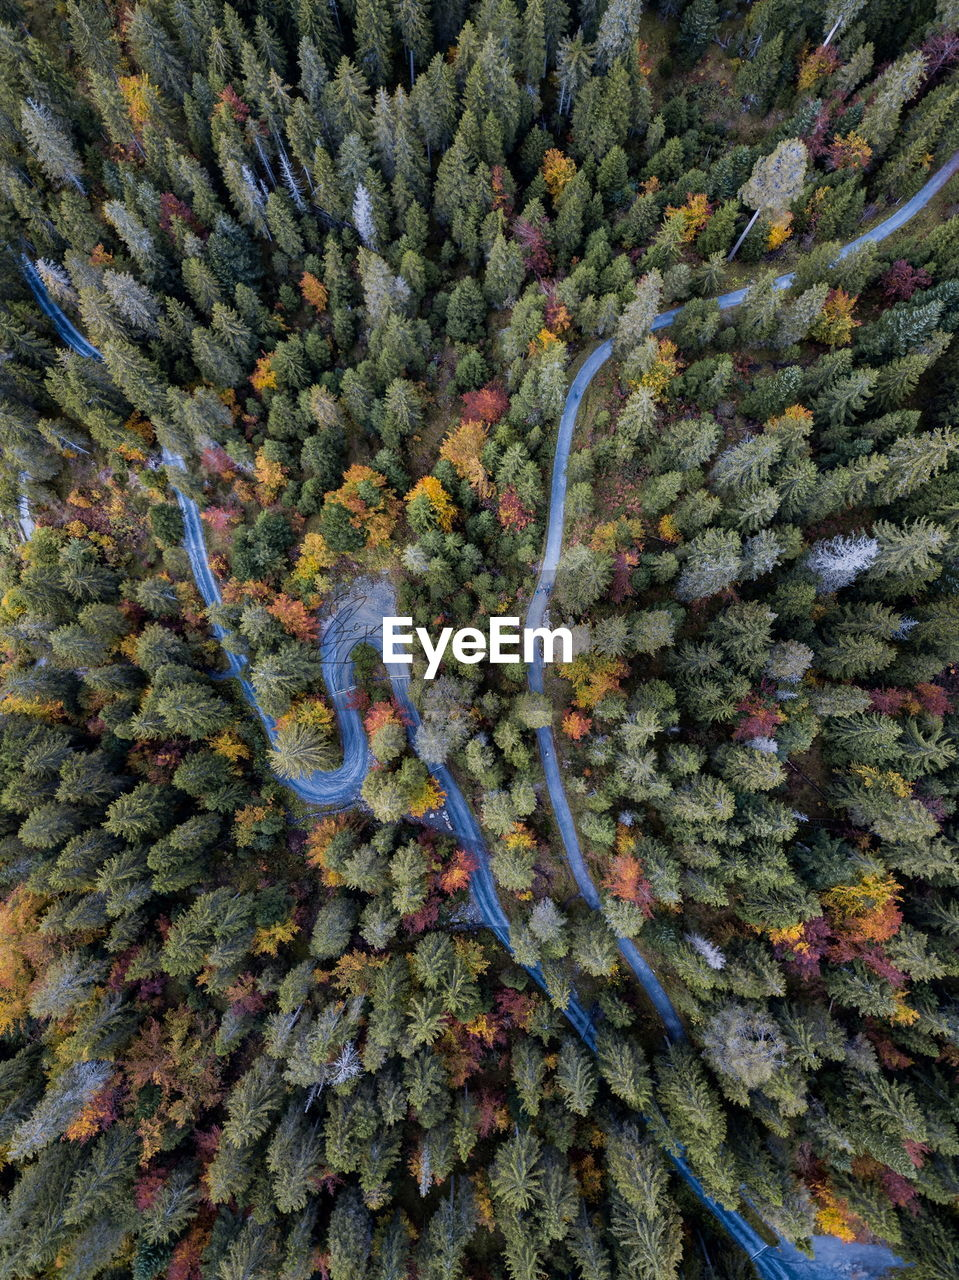 nature, beauty in nature, curve, high angle view, no people, green color, plant, aerial view, backgrounds, full frame, scenics, tree, eyesight, day, outdoors